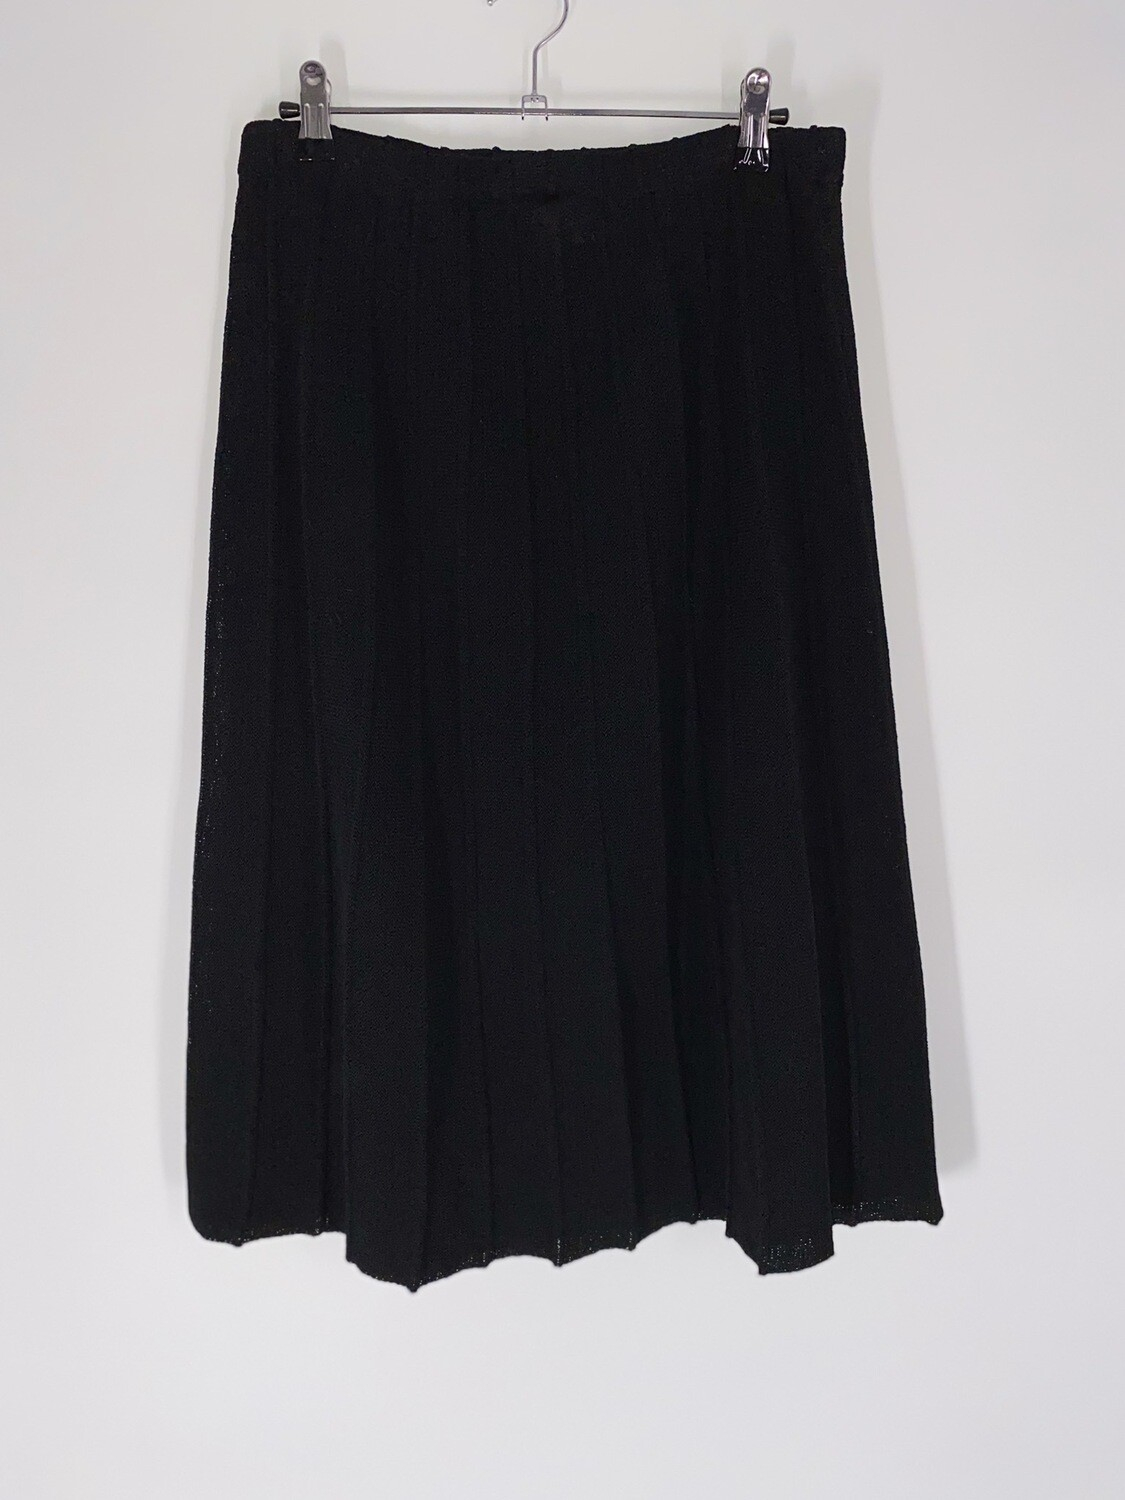 Ribbed Knit Skirt Size M